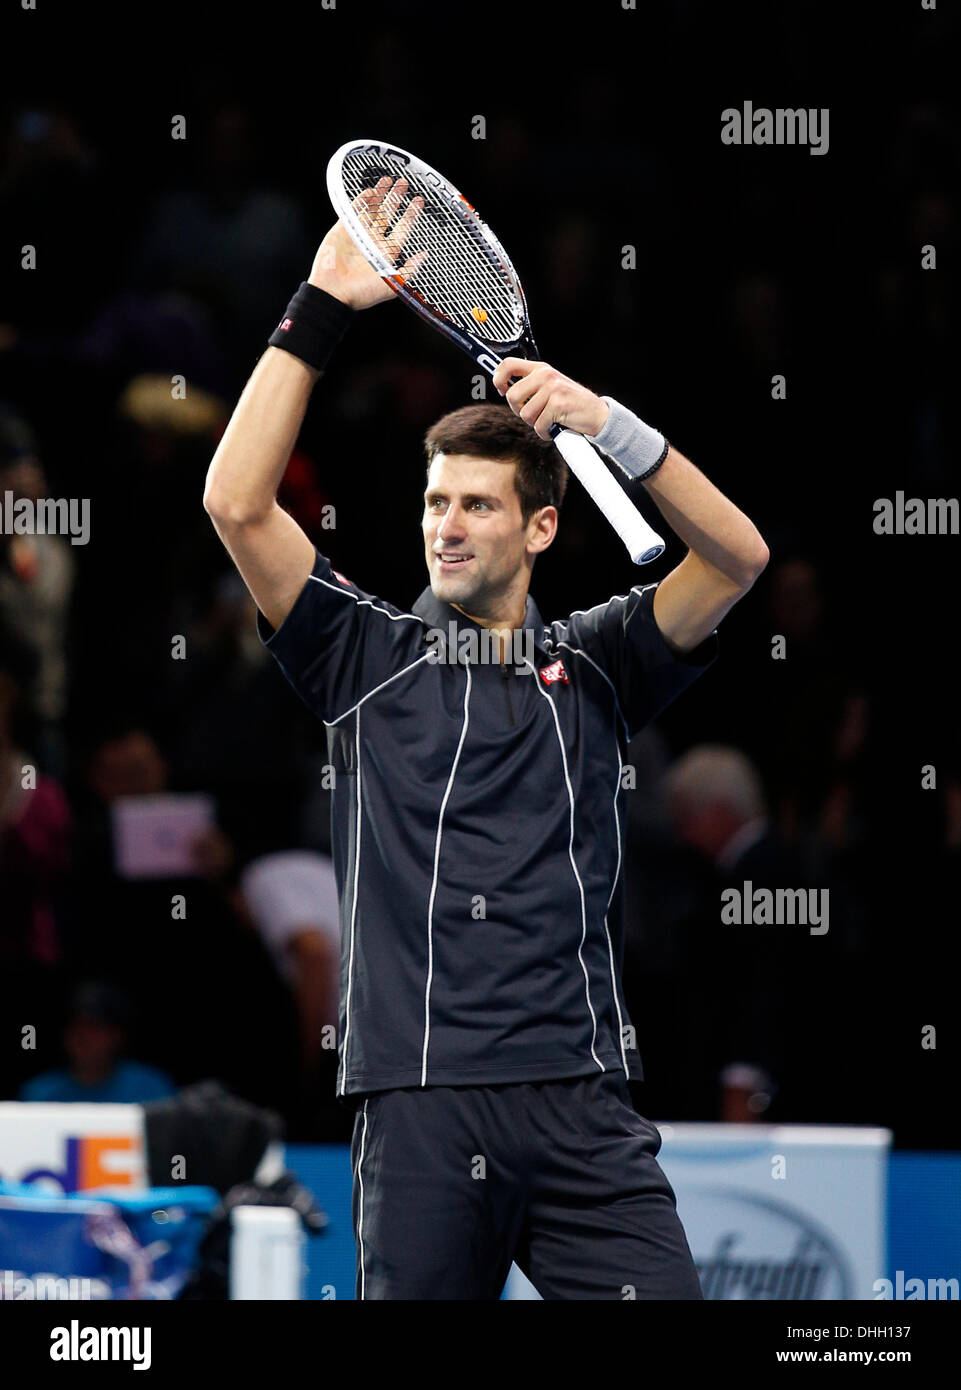 London Uk 10th Nov 2013 Novak Djokovic Srb Defeats Stanislas